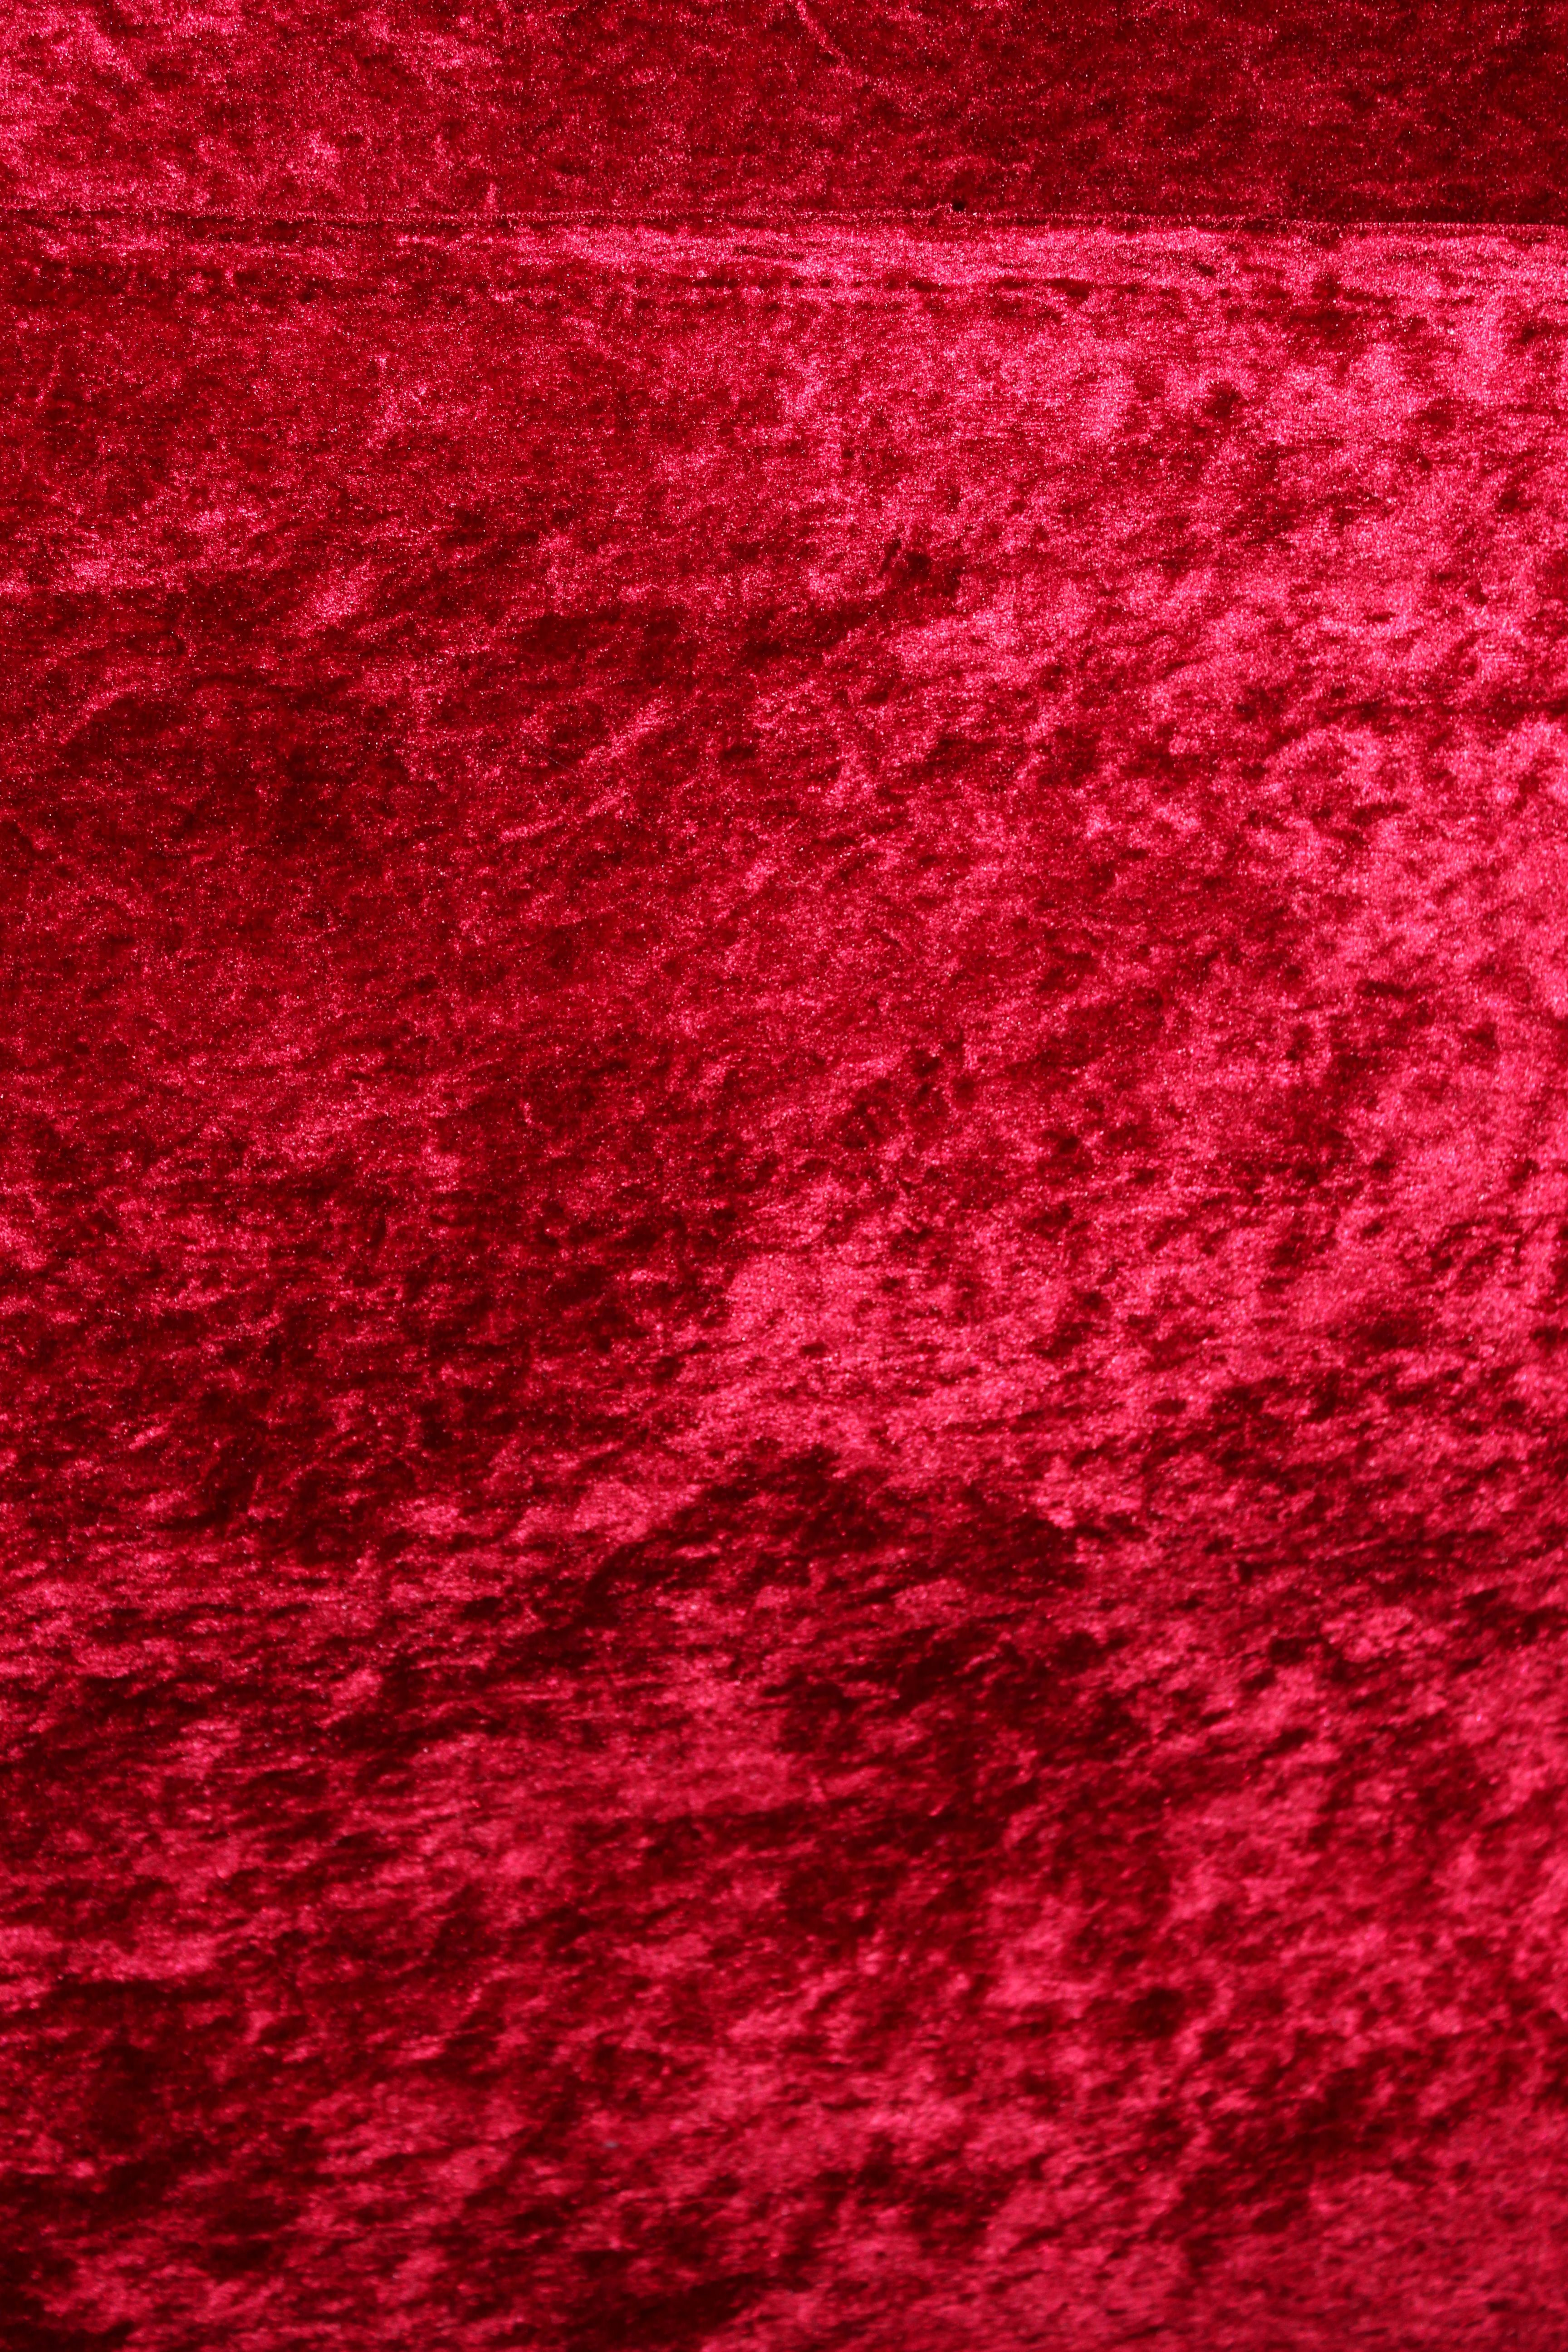 Crushed Velvet Texture For Crushed Velvet Texture Ideas 621440 Other Design Texture In